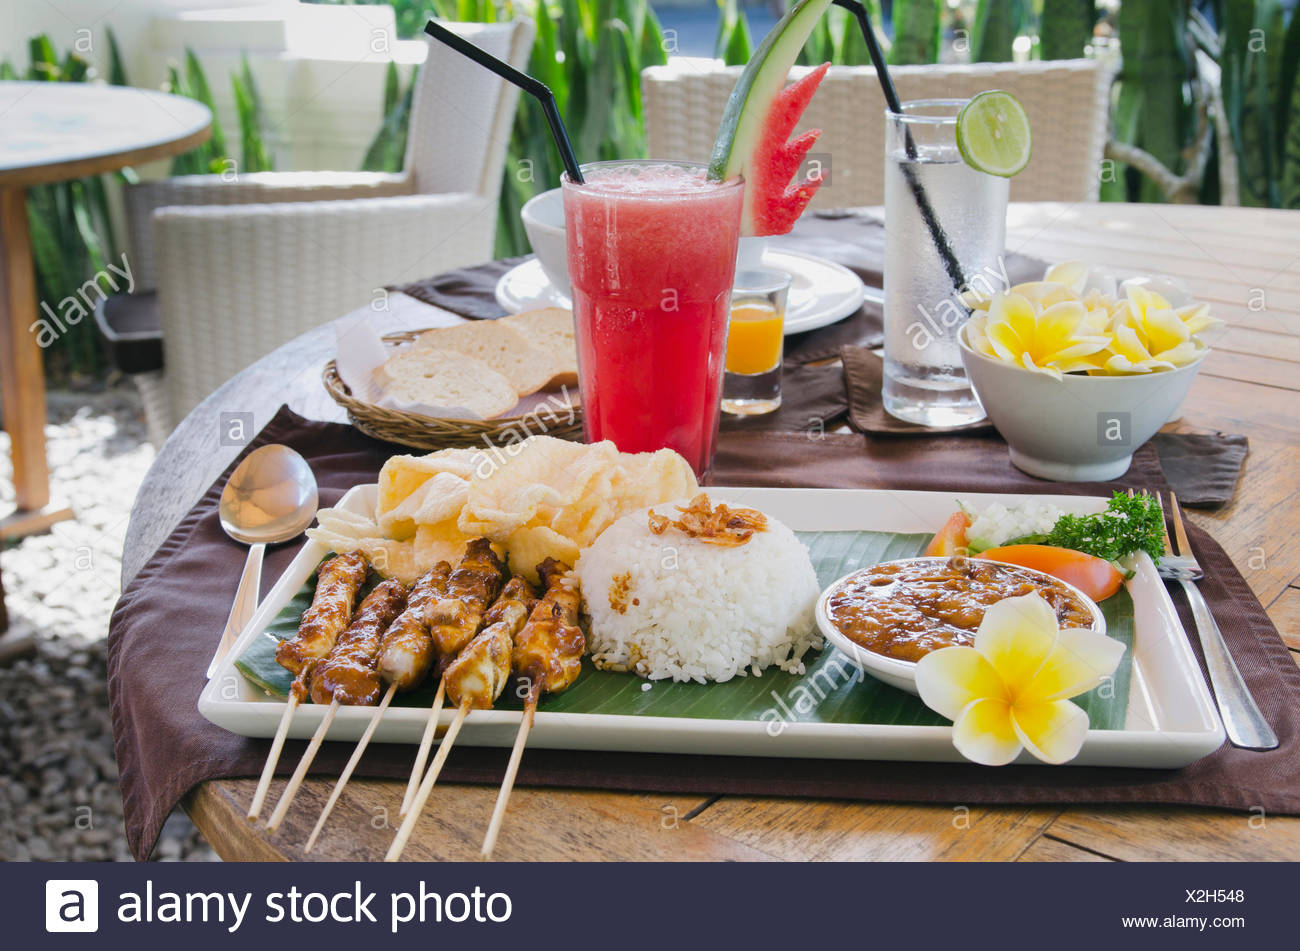 Cuisine Bali Chicken Satay Chicken Skewers With Rice Indonesian Cuisine At A